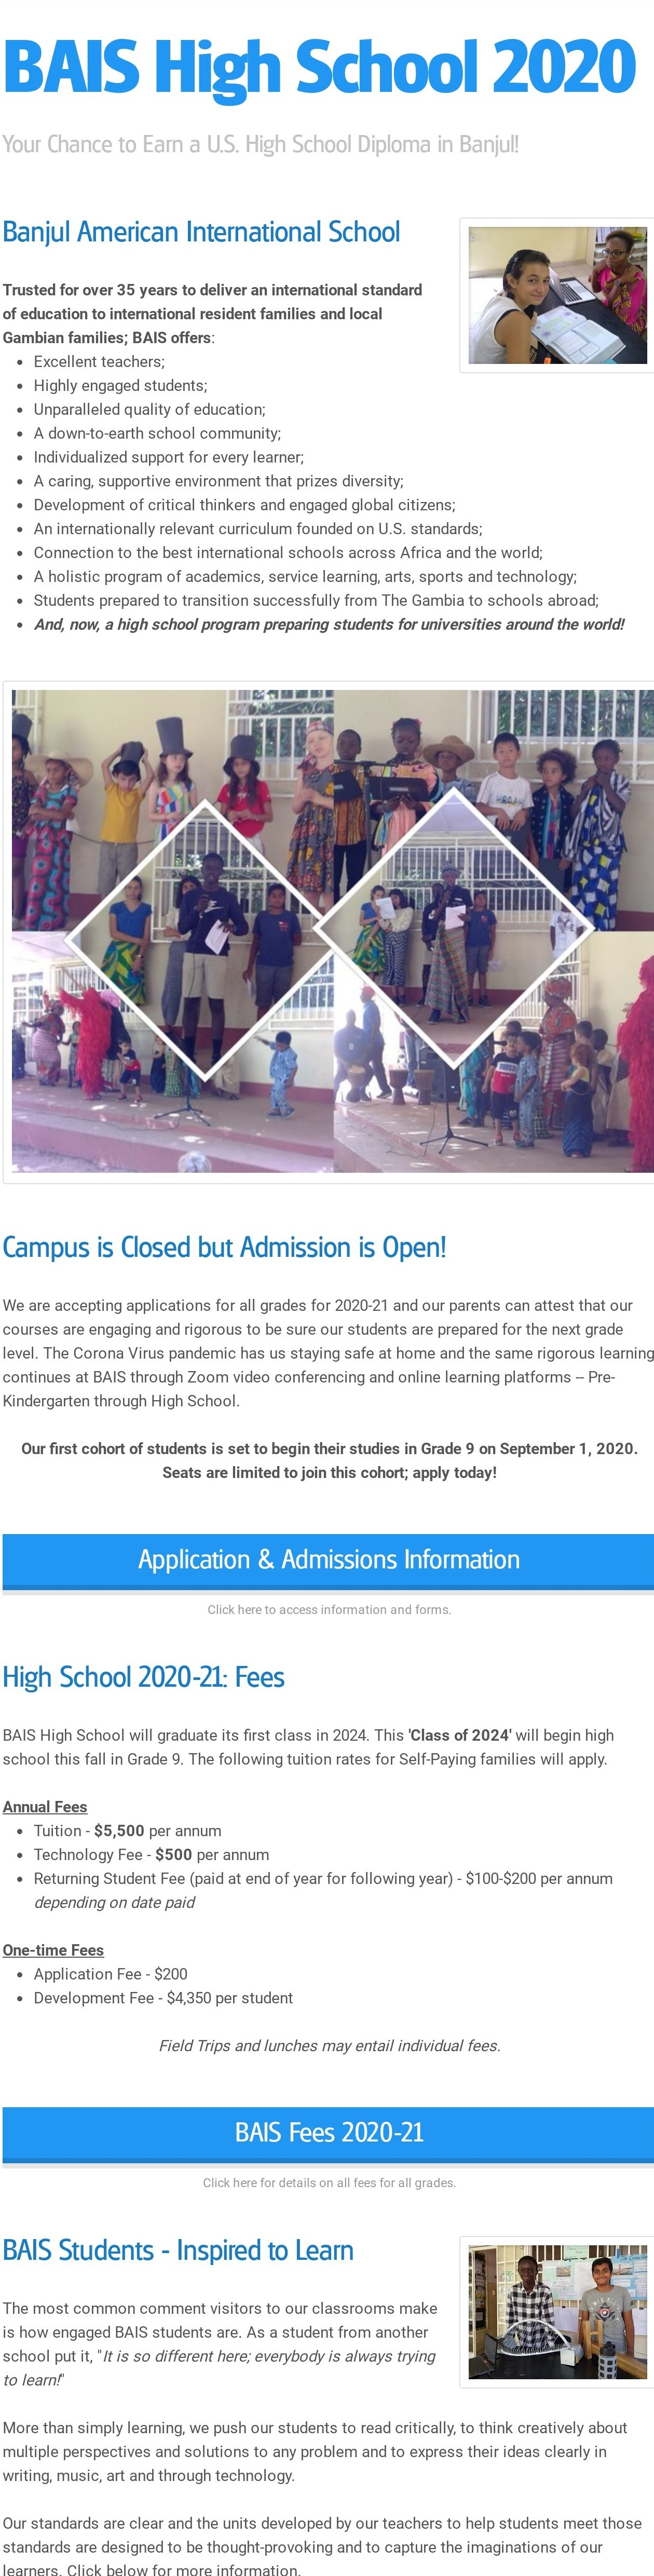 Campus is Closed but BAIS Admission is Open!